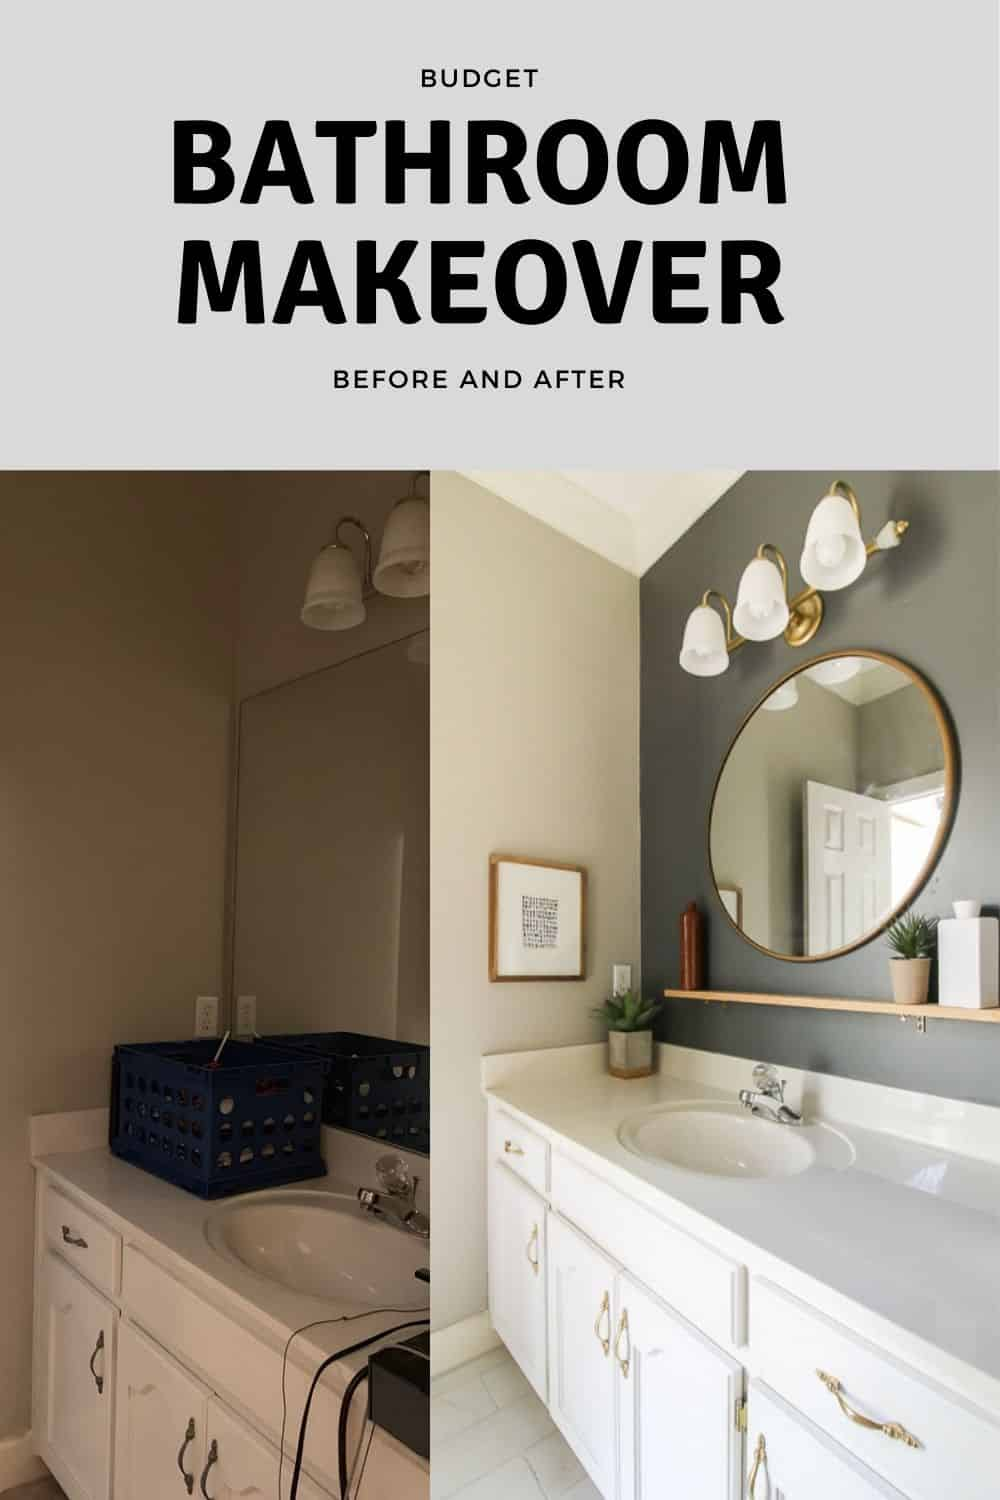 Budget Bathroom Makeover Before and After